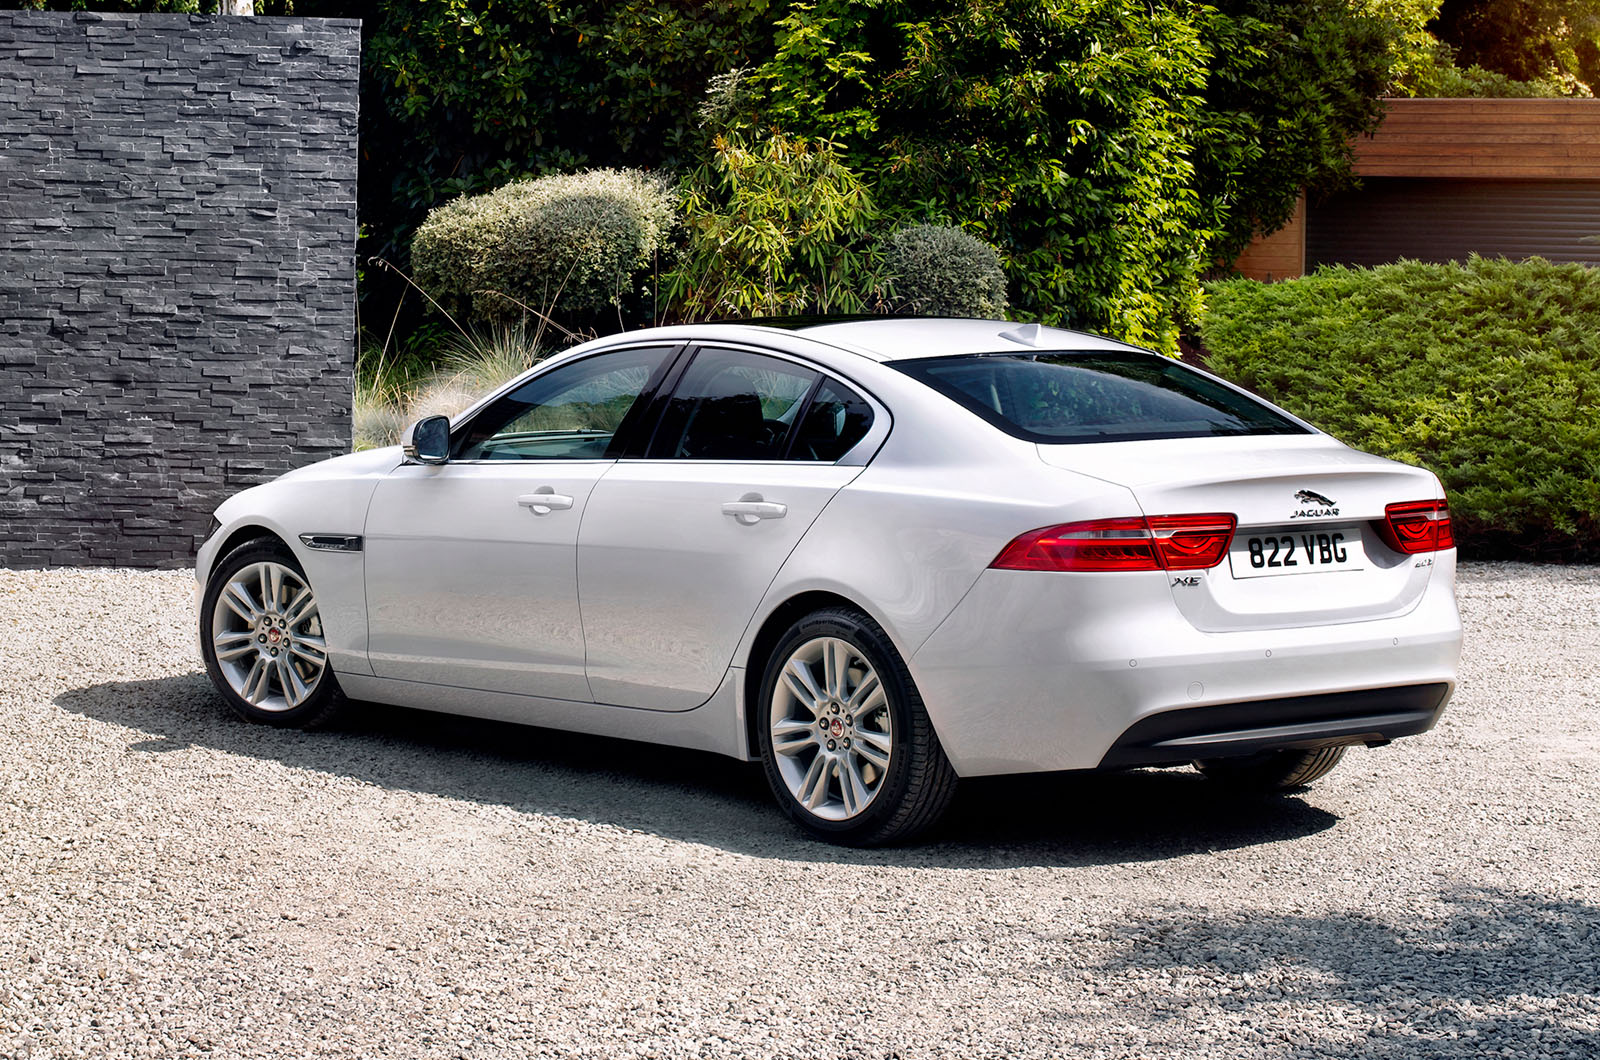 new jaguar xe to cost from 16326995 autocar